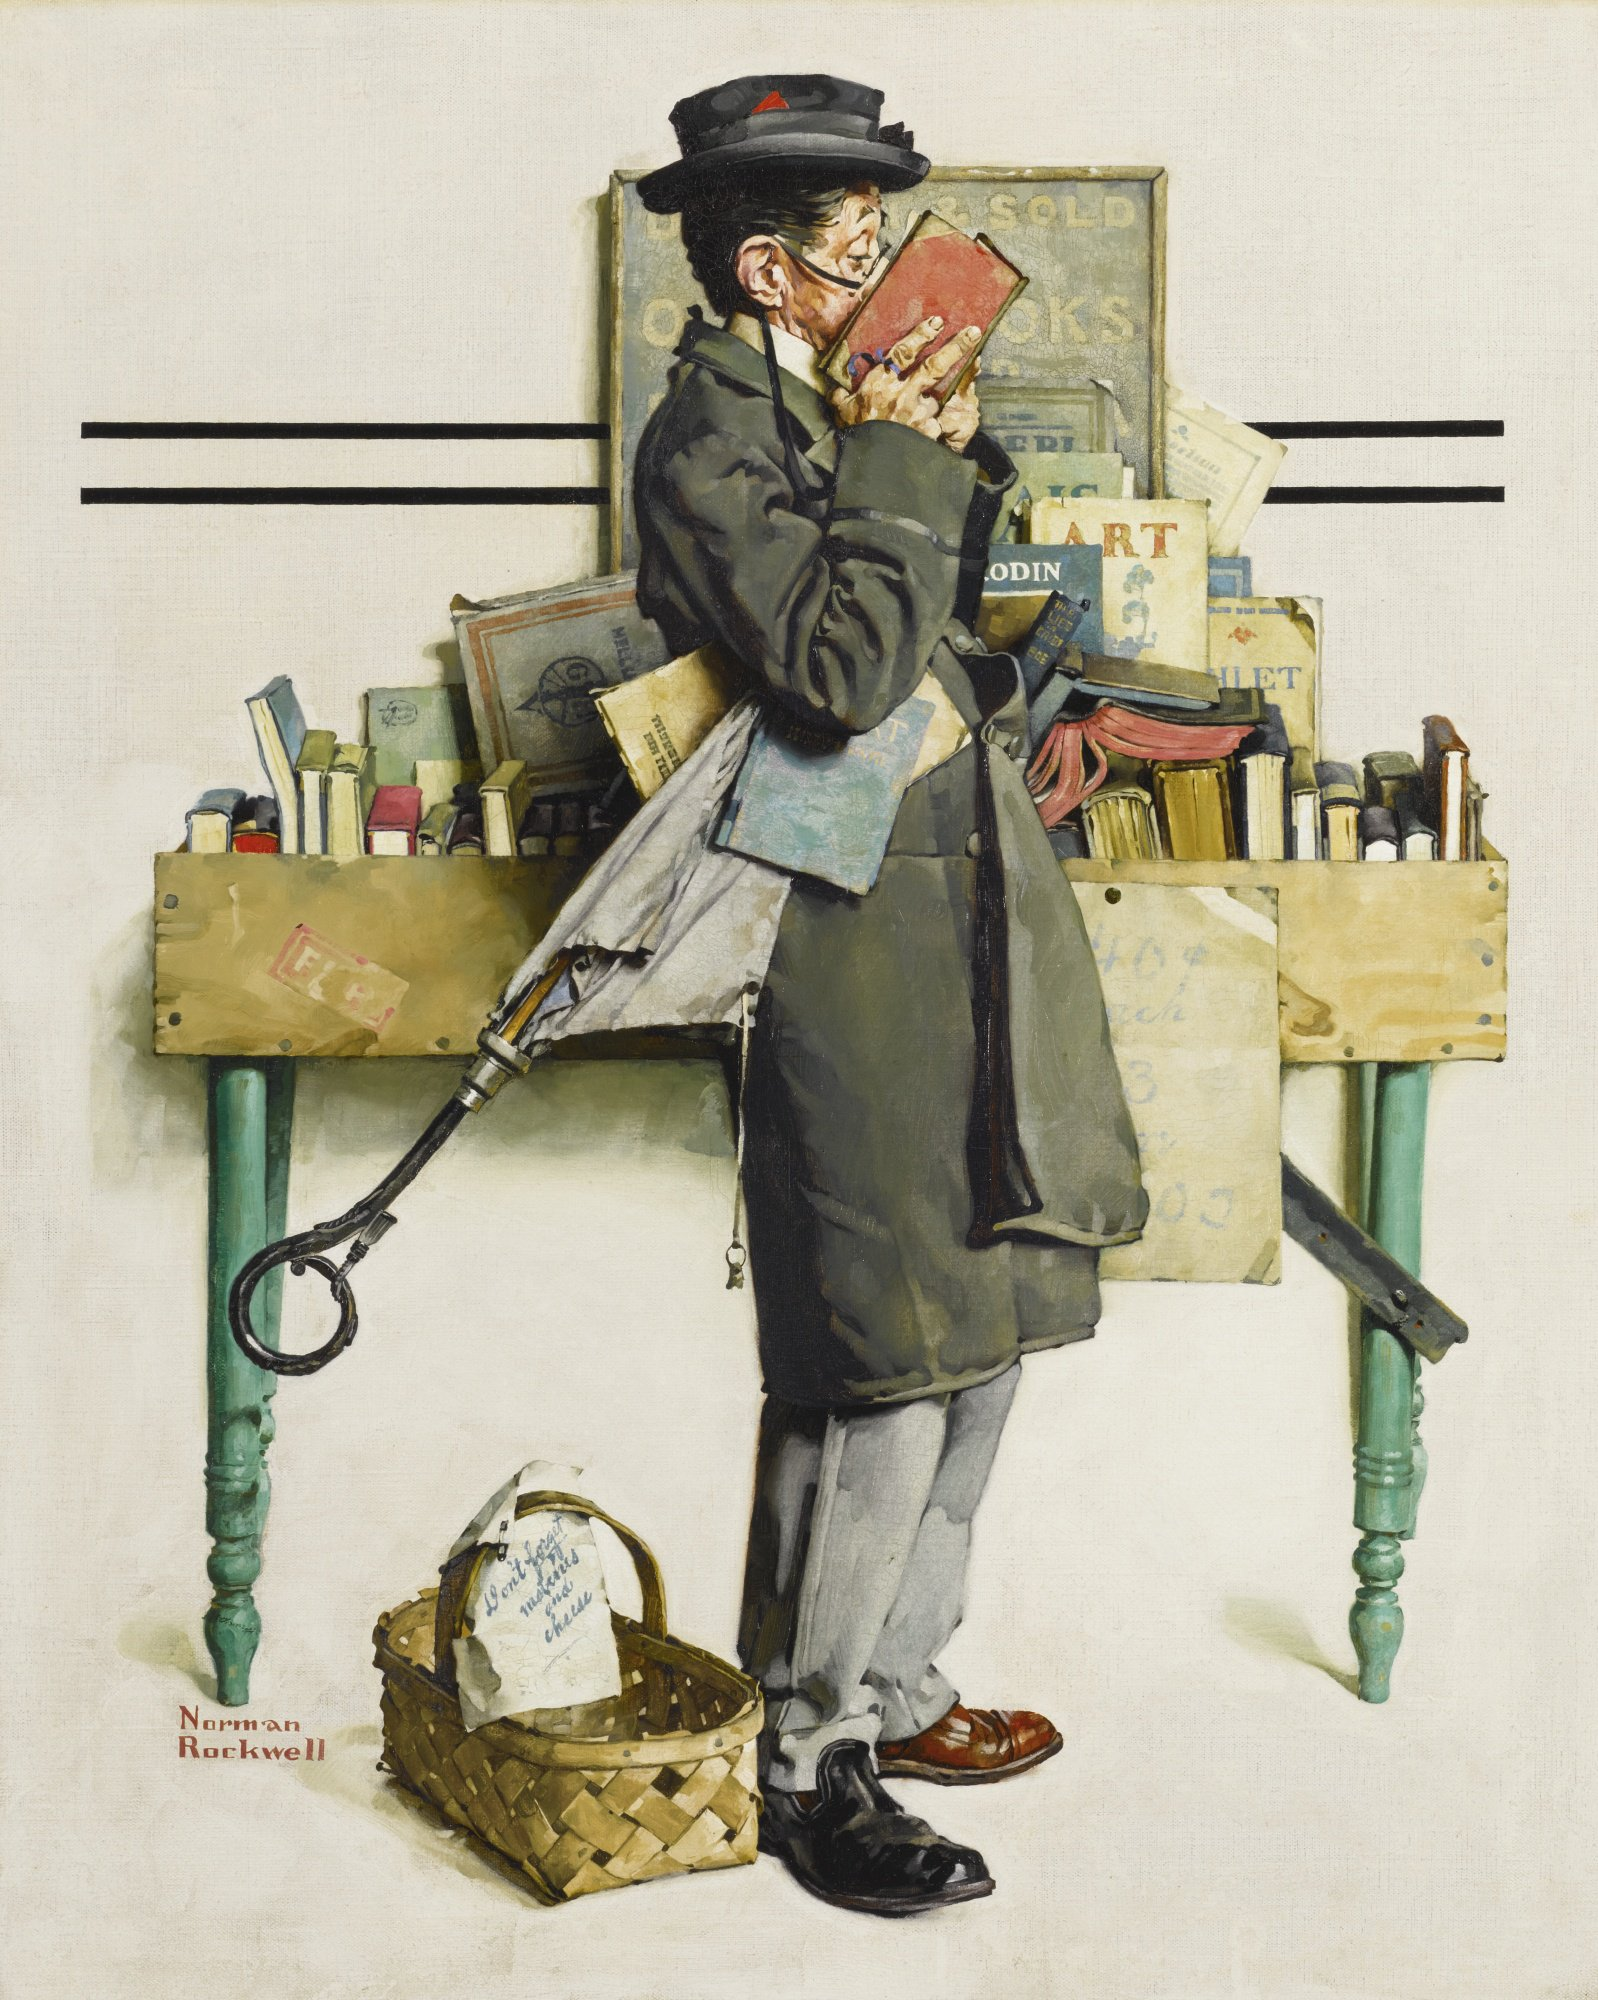 Bookworm, 1926 Norman Rockwell #painting #illustration https://t.co/EP55hIaDv1